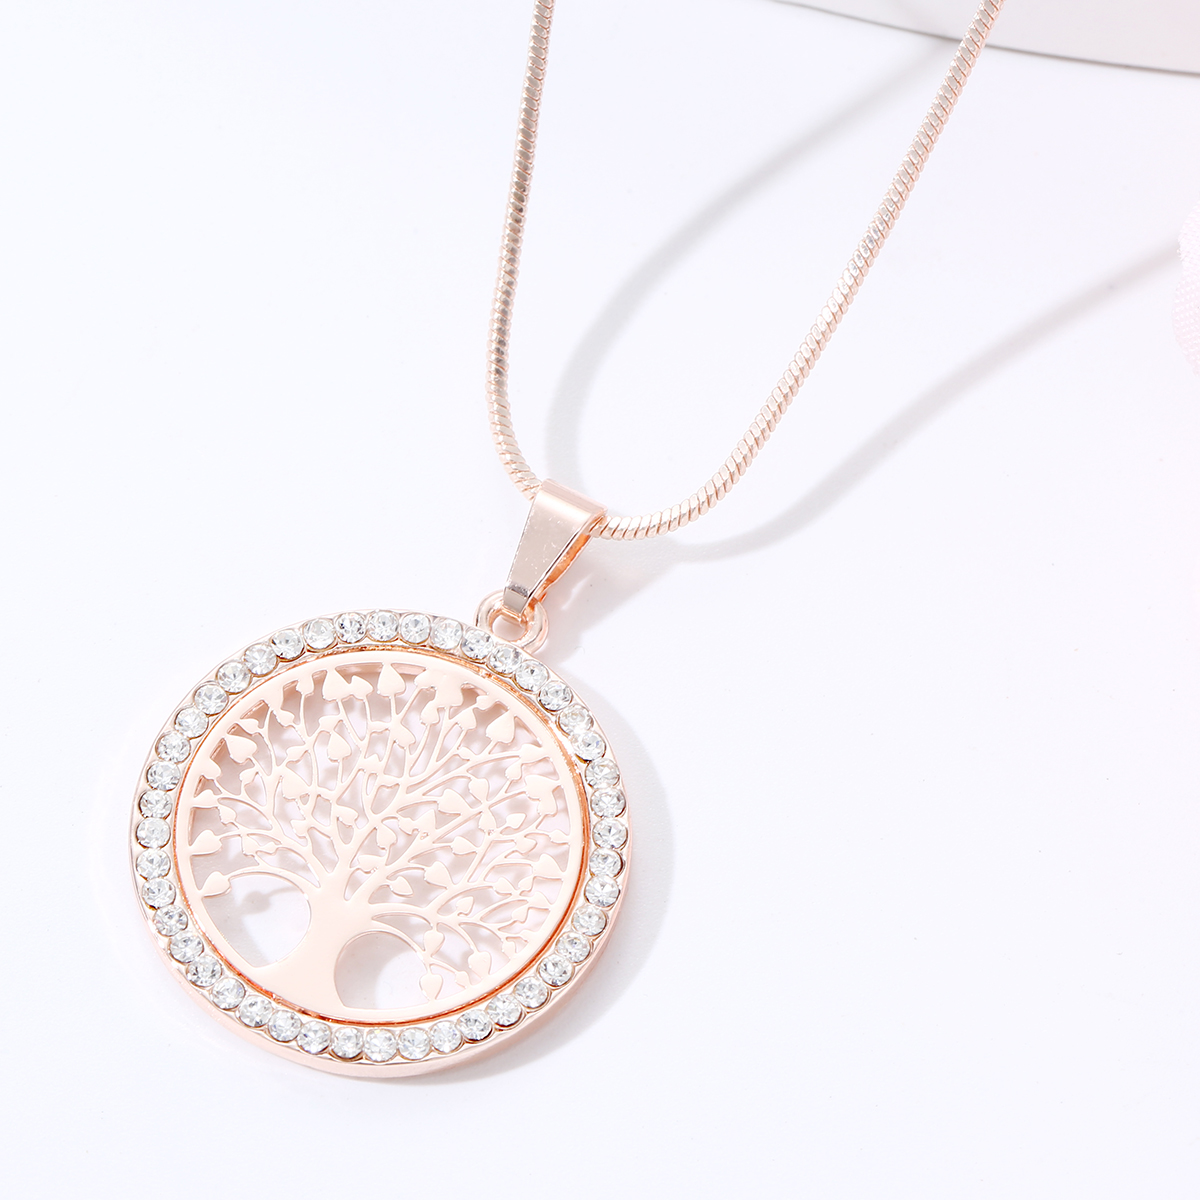 Hot Tree of Life Crystal Round Small Pendant Necklace Gold Silver Color Bijoux Collier Elegant Women Jewelry Gifts Dropshipping 3